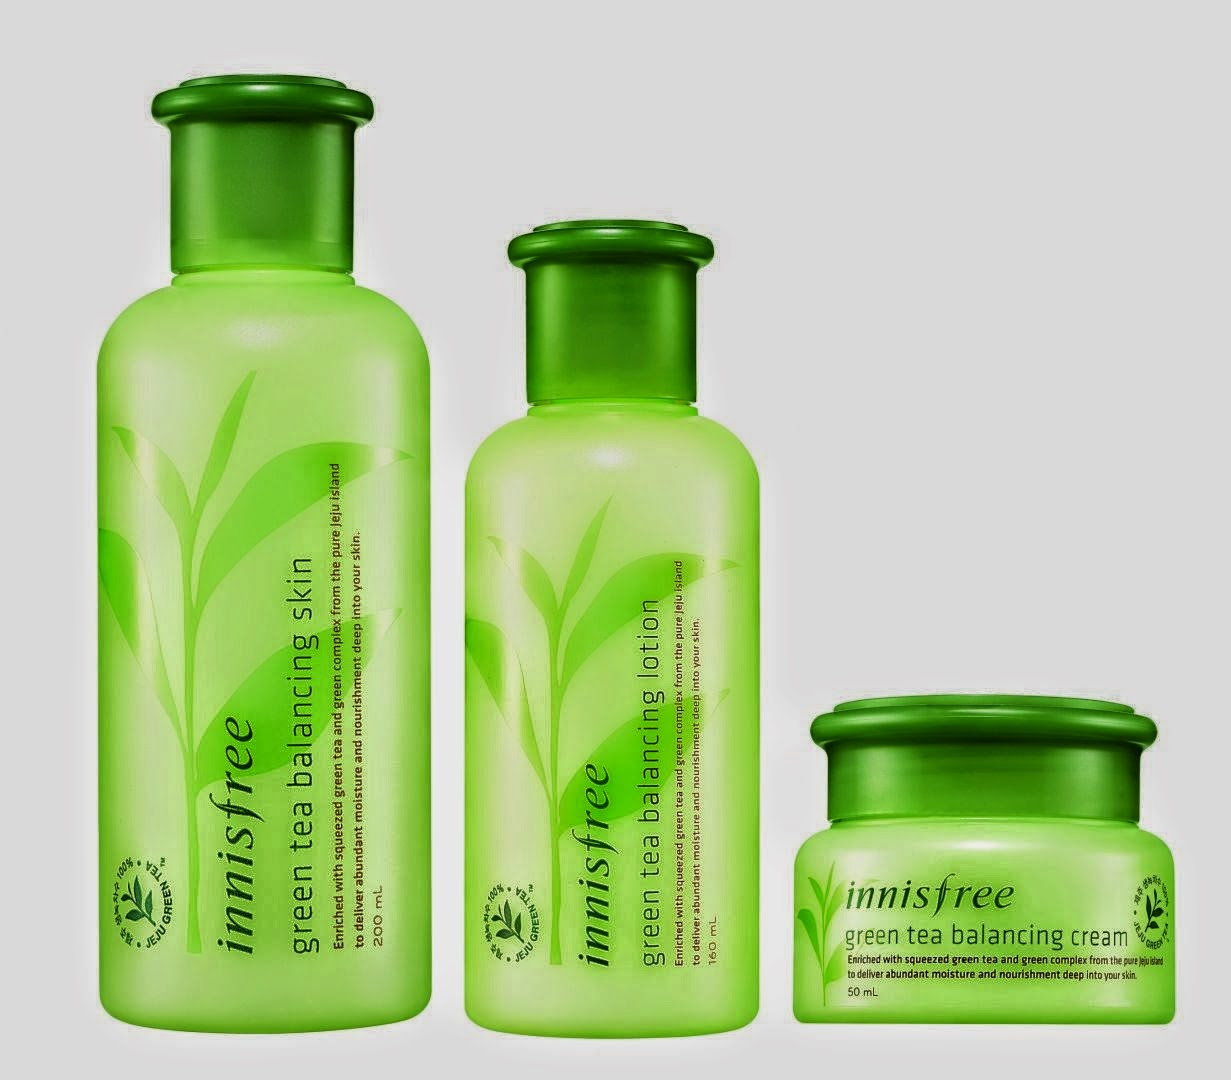 Apple Scents Review Innisfree New Green Tea Line Some Products Balancing Special Kit 4 Items For Combination Skin Type Toner Refiner Lotion Moisturizer Emulsion Cream